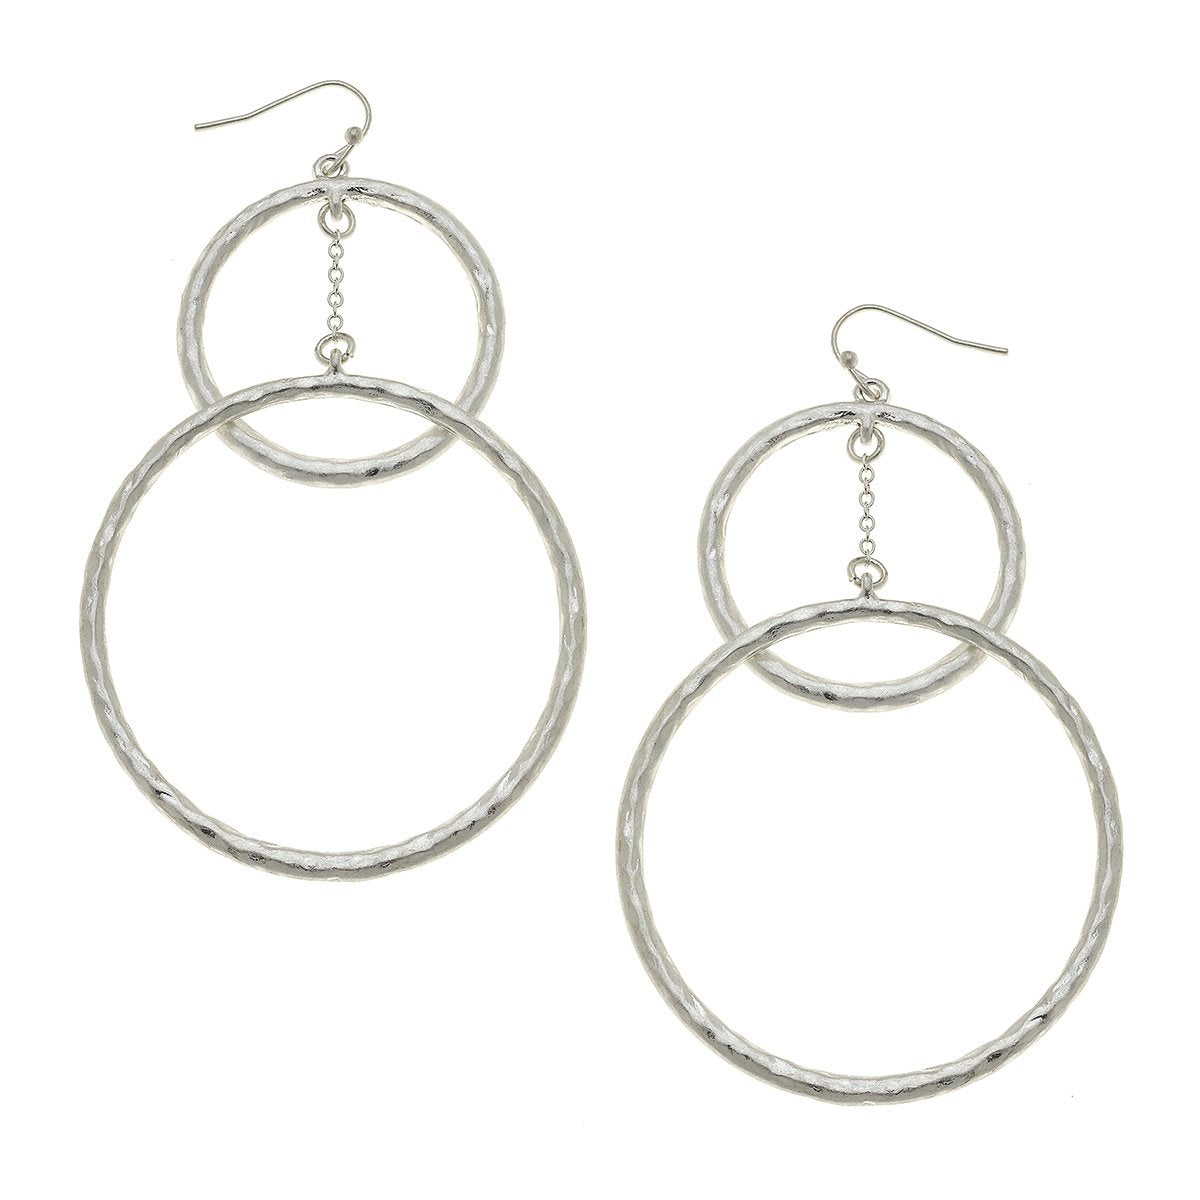 Double Drop Hoop Earrings in Worn Silver